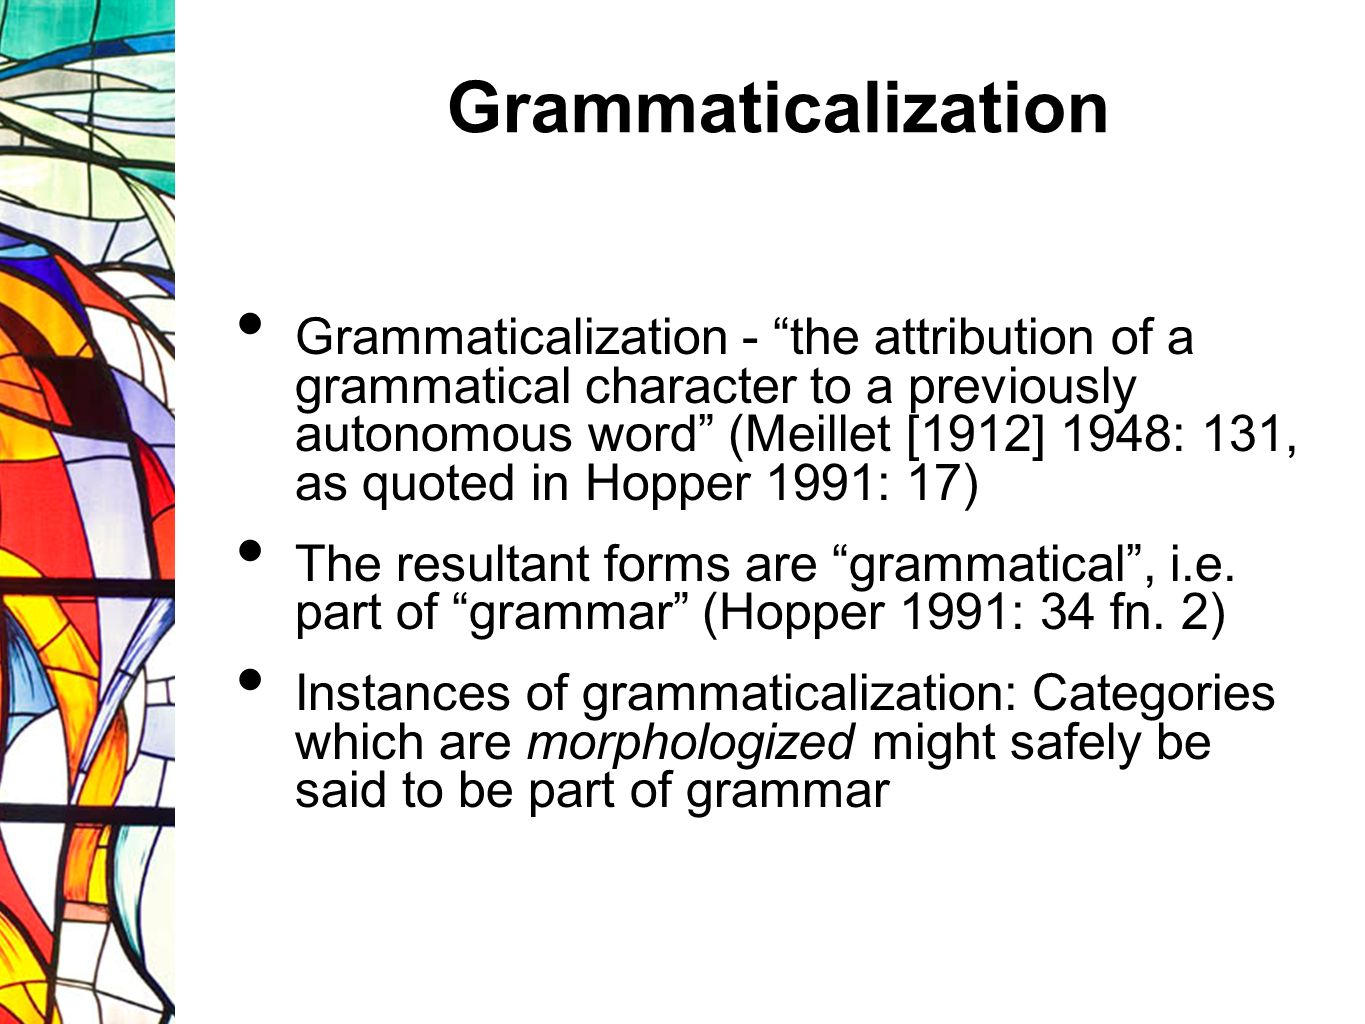 Grammaticalization Grammaticalization may take place by: desemanticization, bleaching, emptying or loss of semantic or pragmatic meaning, increase in abstractness, or increase in bondedness: forms may become less free and more bound (Traugott and Heine 1991: 4-7)